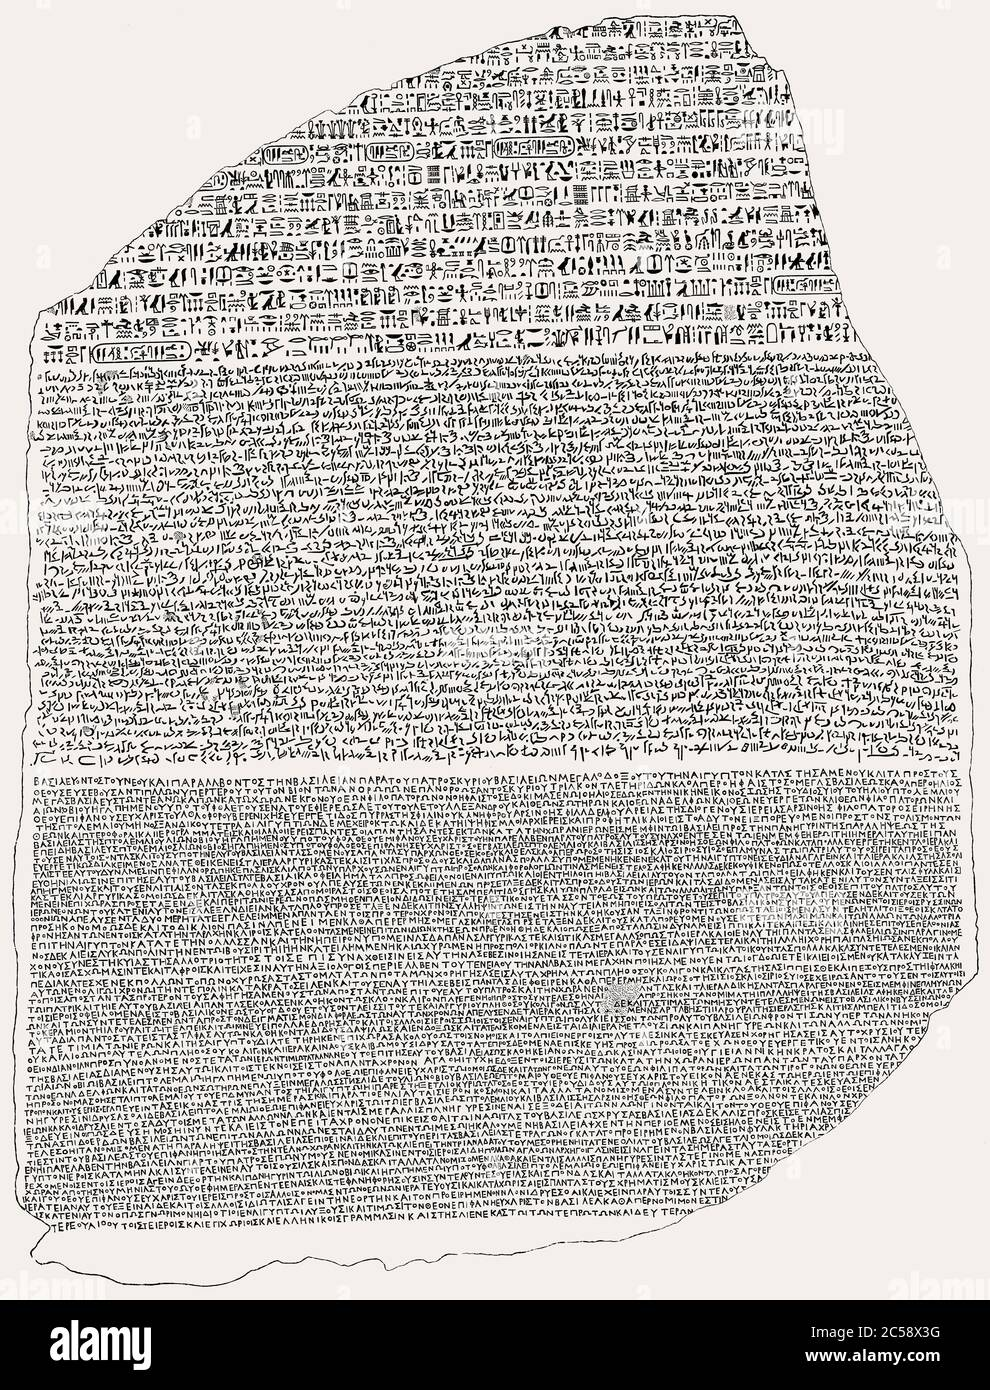 The Rosetta Stone, a stele with hieroglyphic and Demotic and Ancient Greek Stock Photo